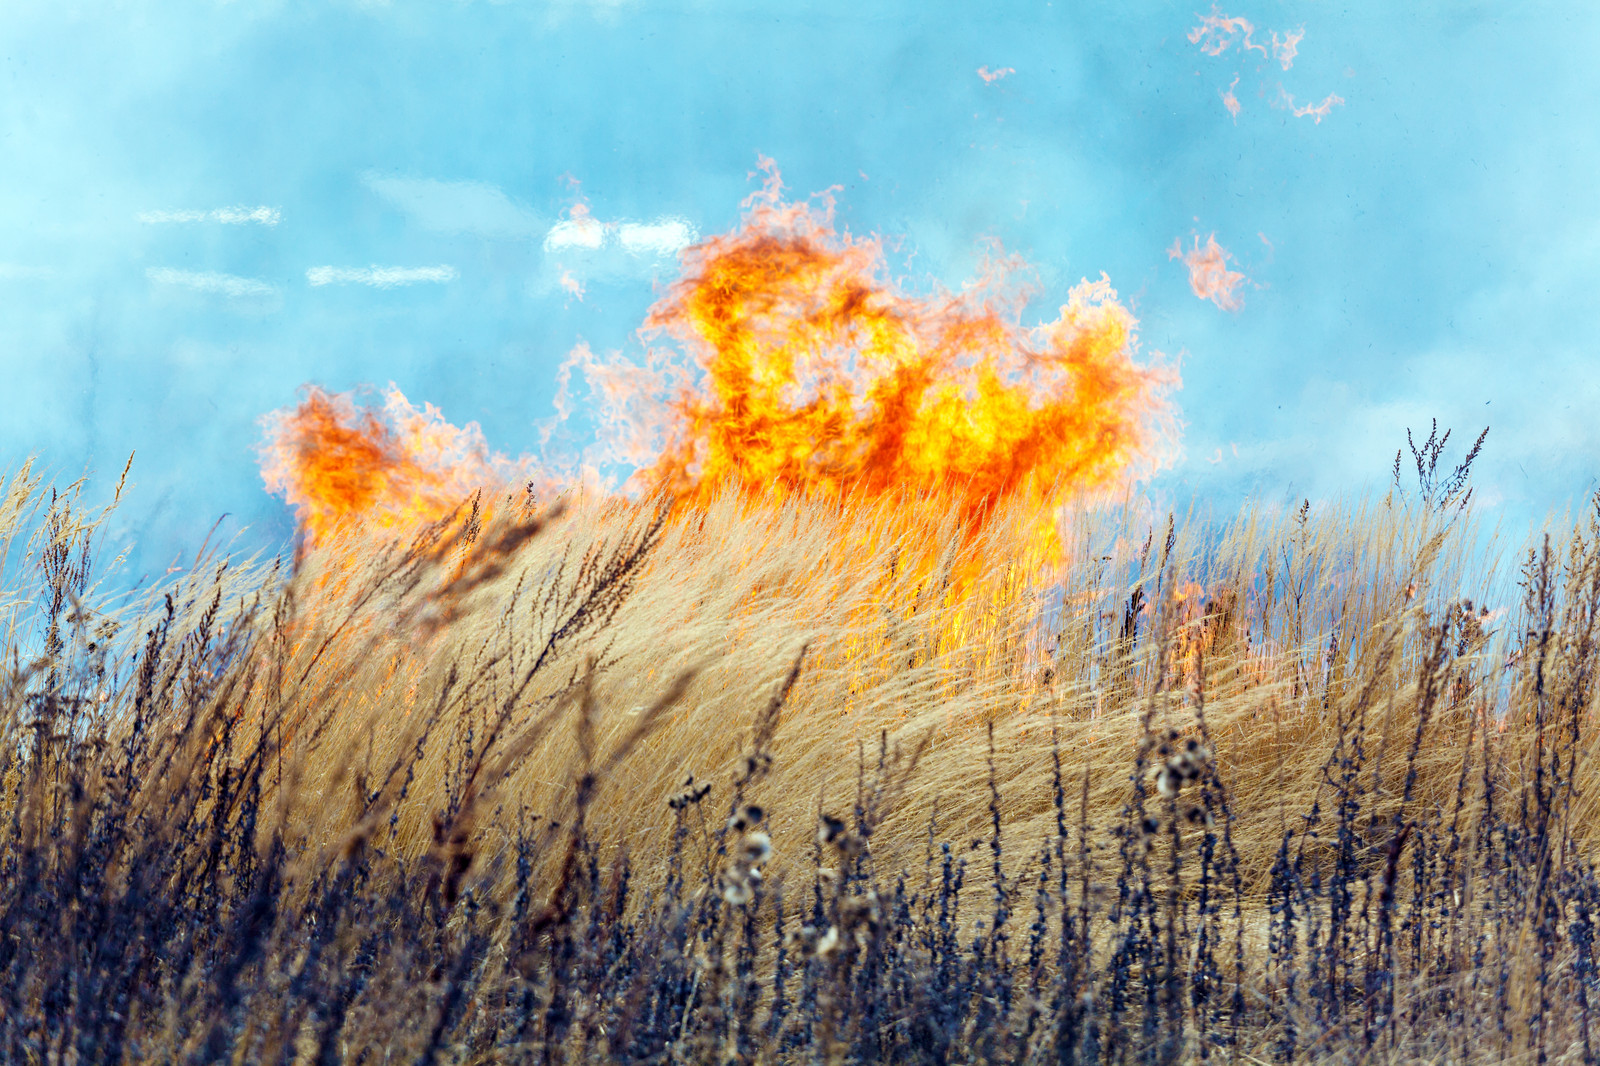 Chance of Field Fires High Due To Hot, Dry Weather